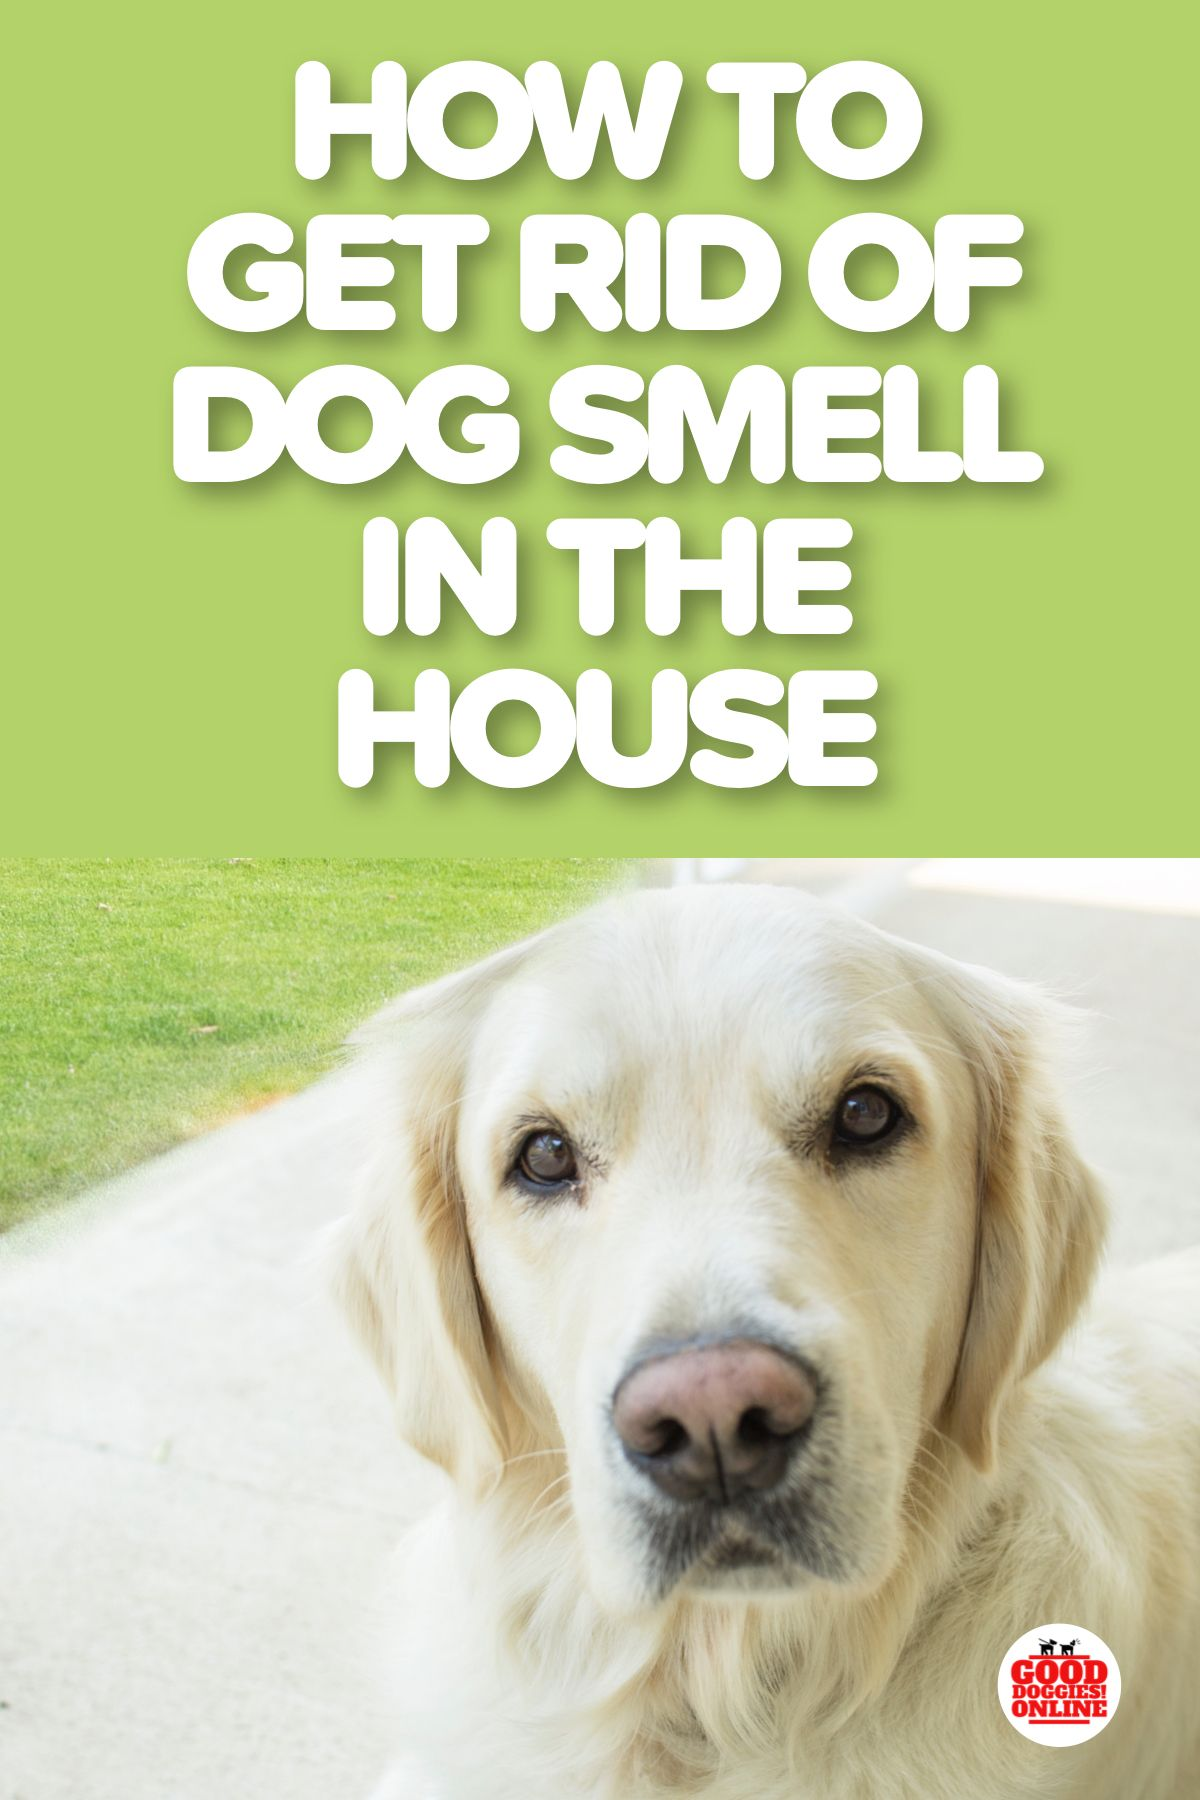 How To Get Rid Of Dog Smell In The House Dog Smells Smelly Dog